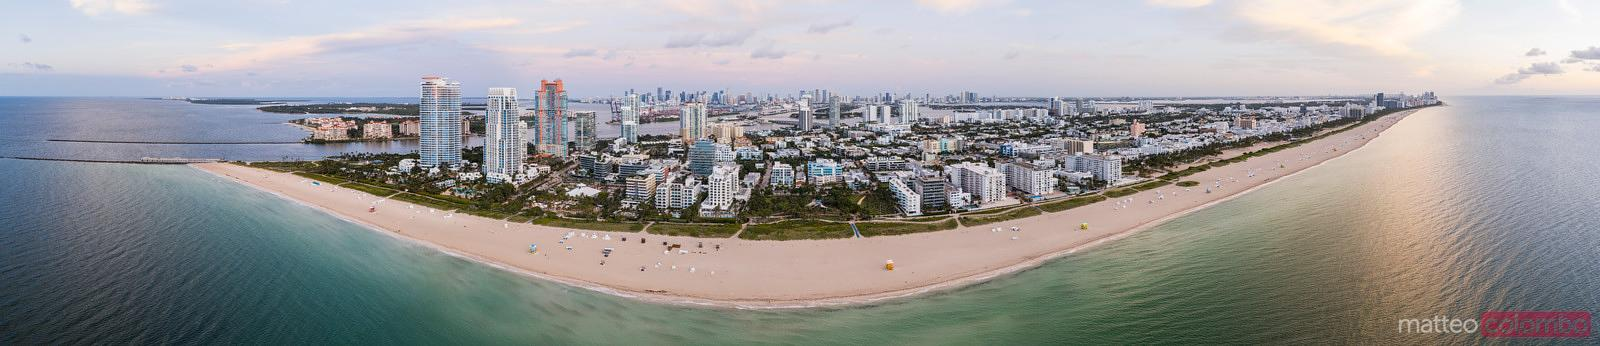 High resolution panorama of South beach, Miami, Florida